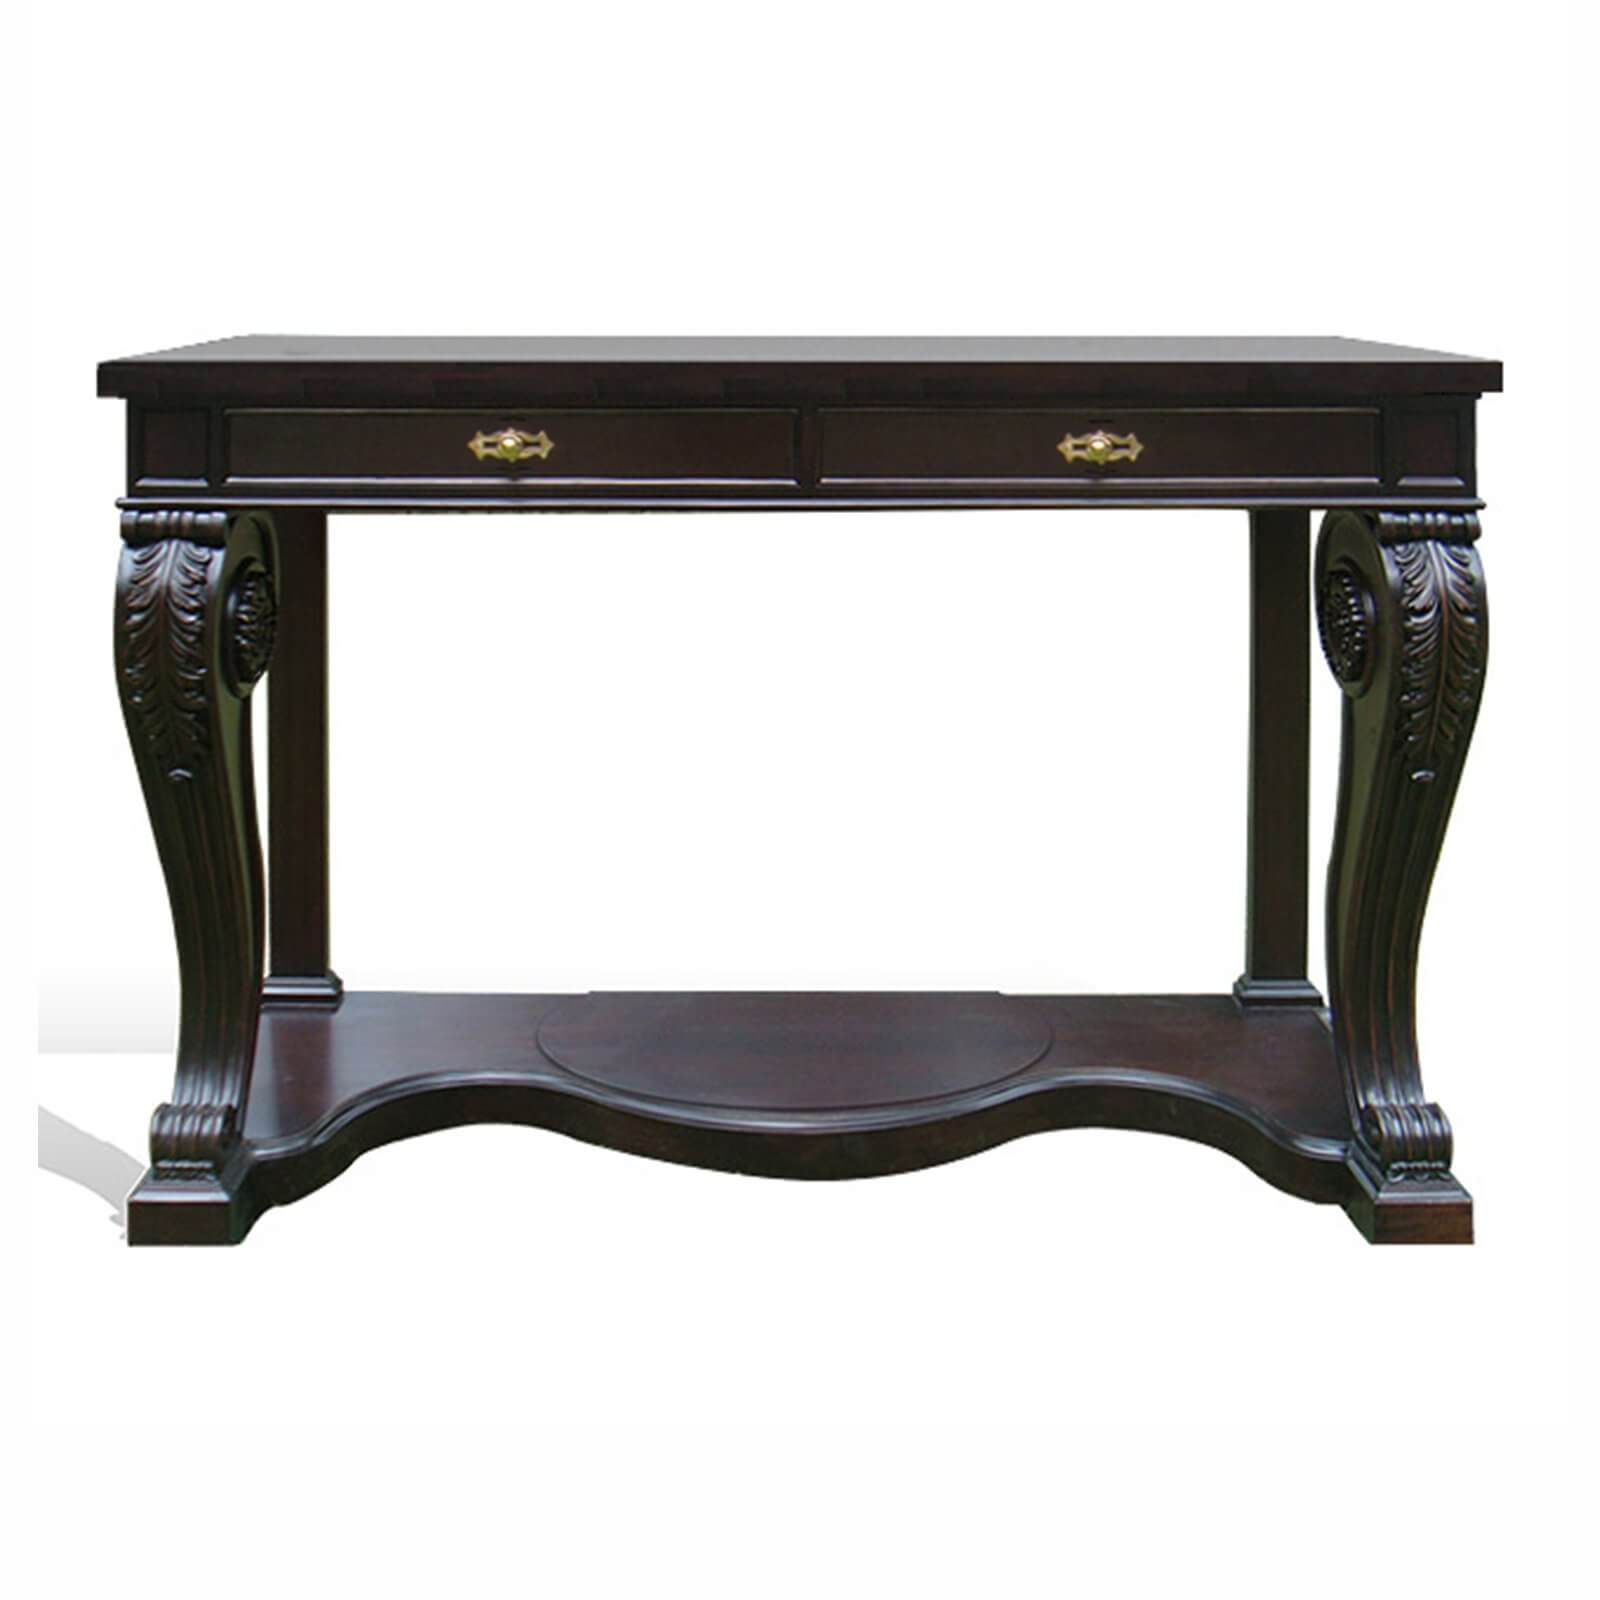 SOMERSET CONSOLE 11 - STUART MEMBERY HOME COLLECTION